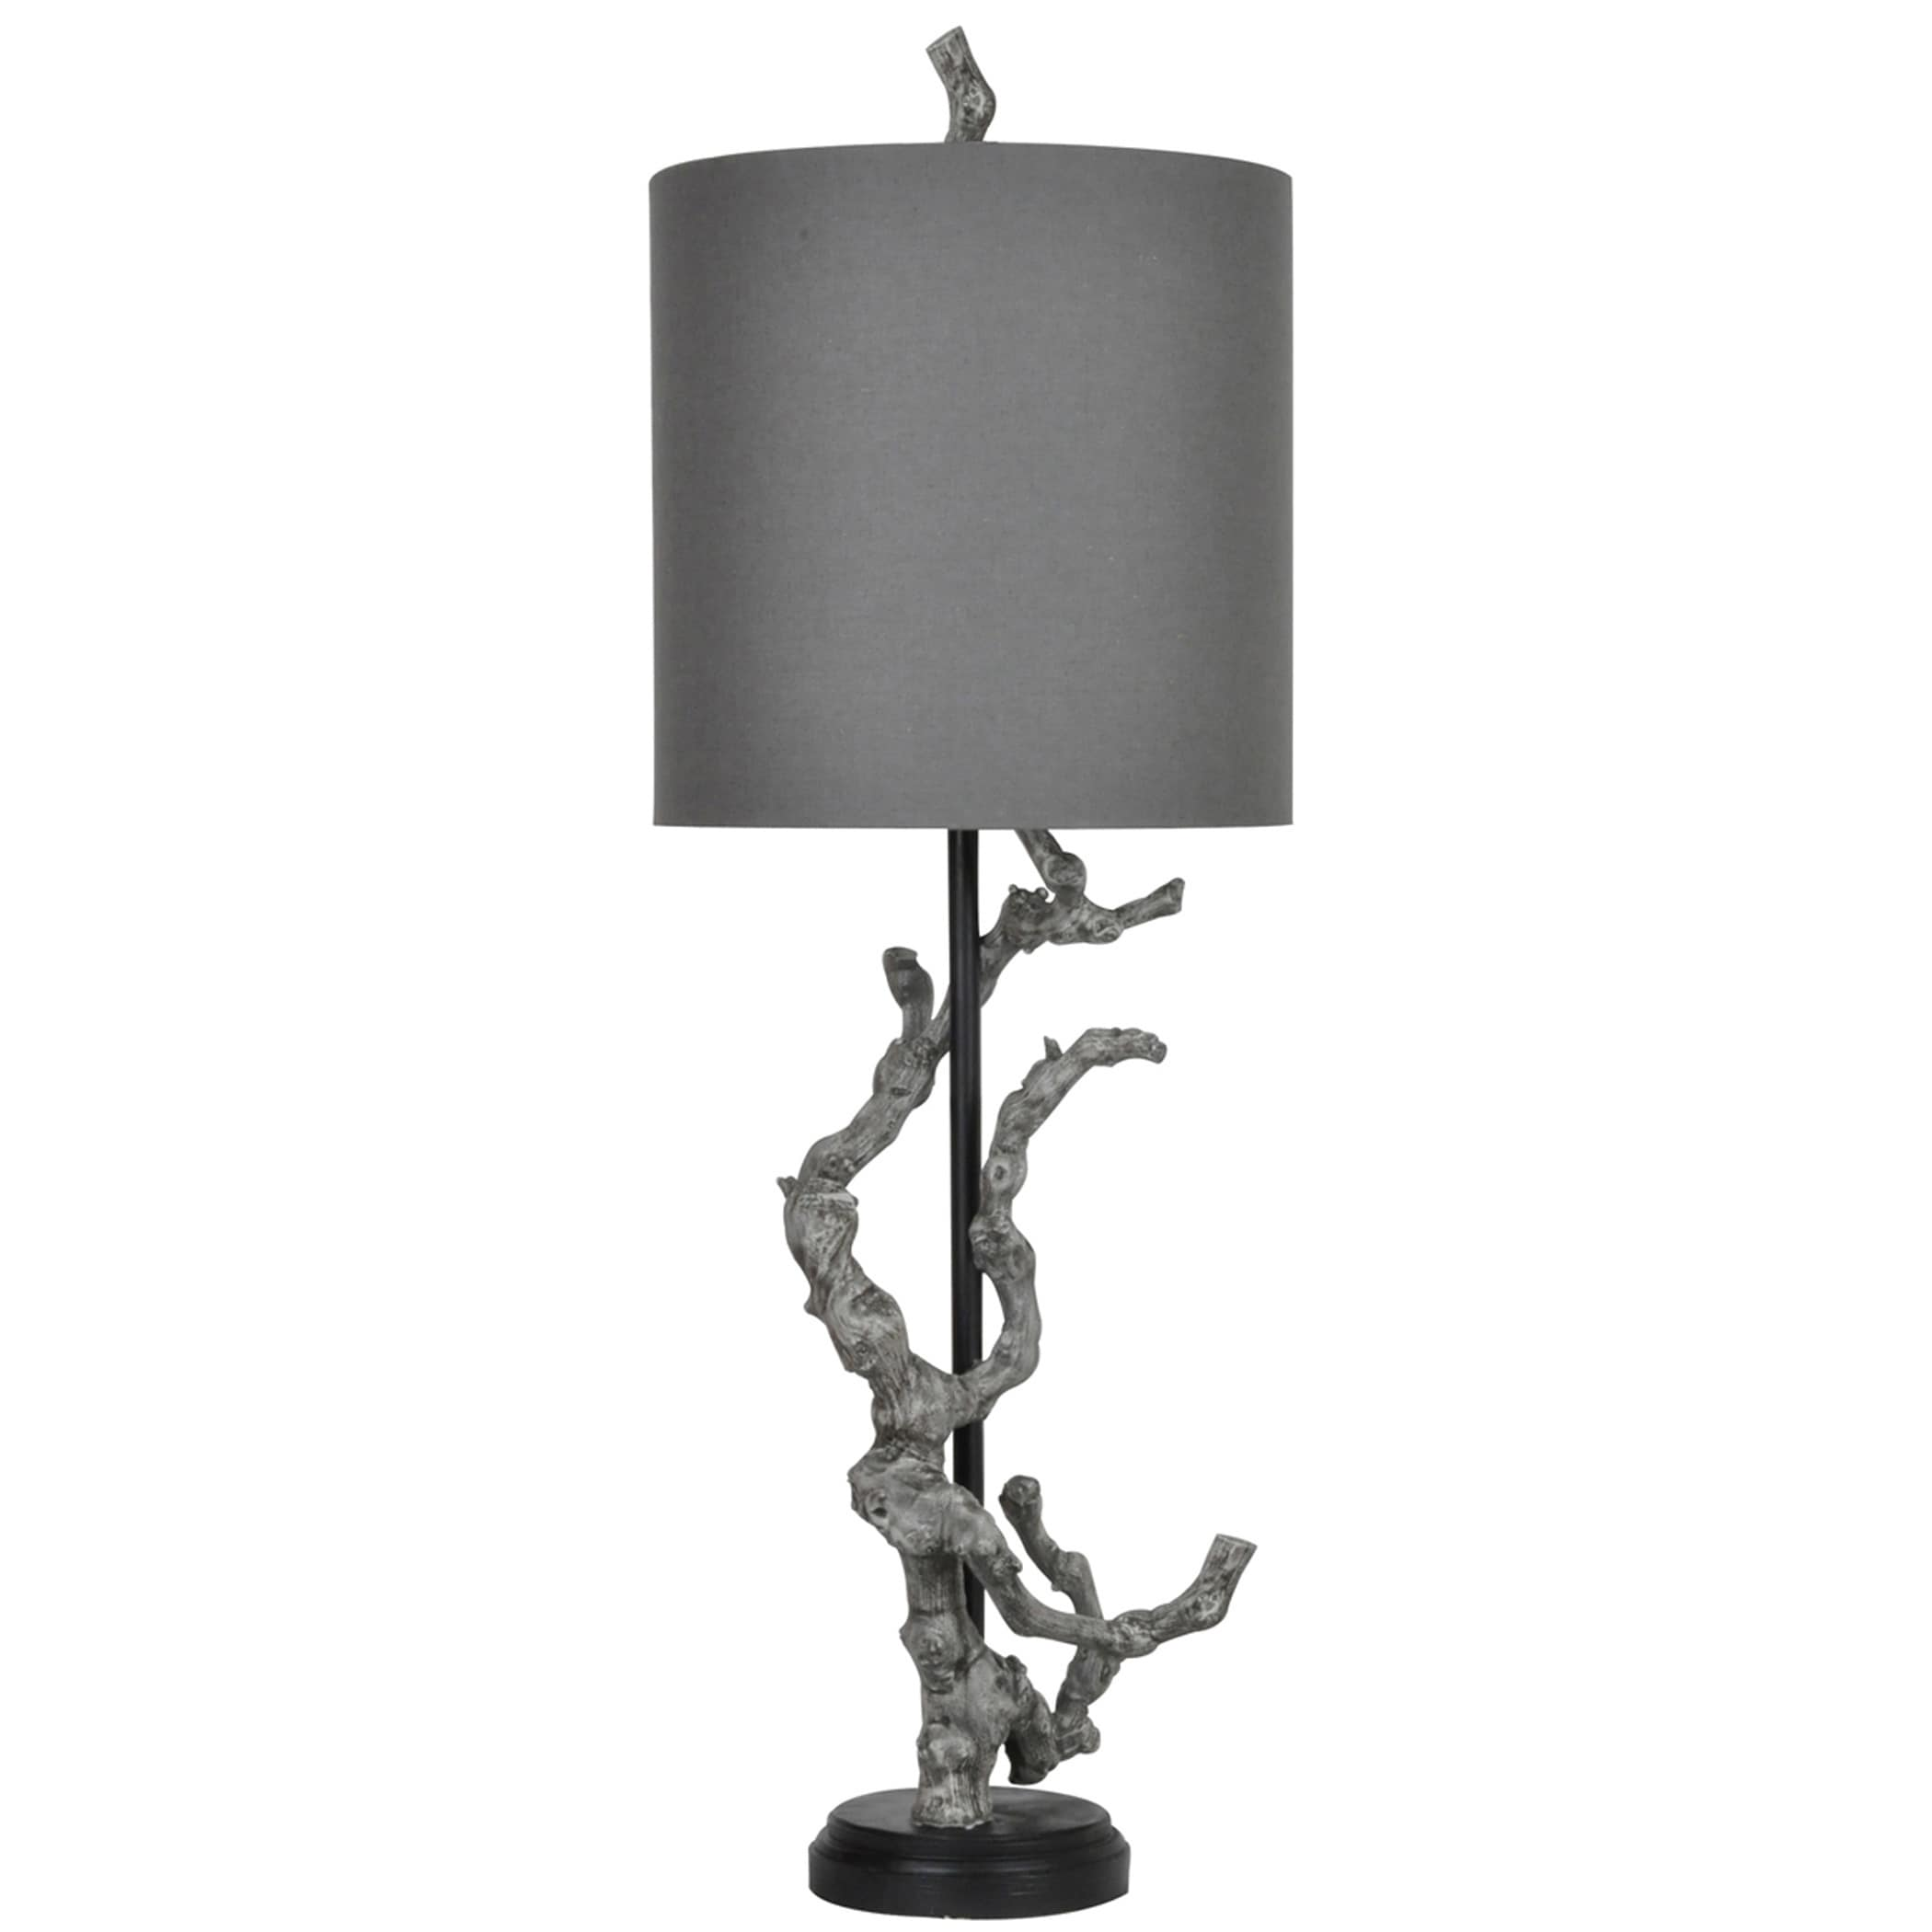 Branches table lamp Chrome Shop Twisted Branch Bleached Grey 435inch Table Lamp Free Shipping Today Overstockcom 11606390 Overstock Shop Twisted Branch Bleached Grey 435inch Table Lamp Free